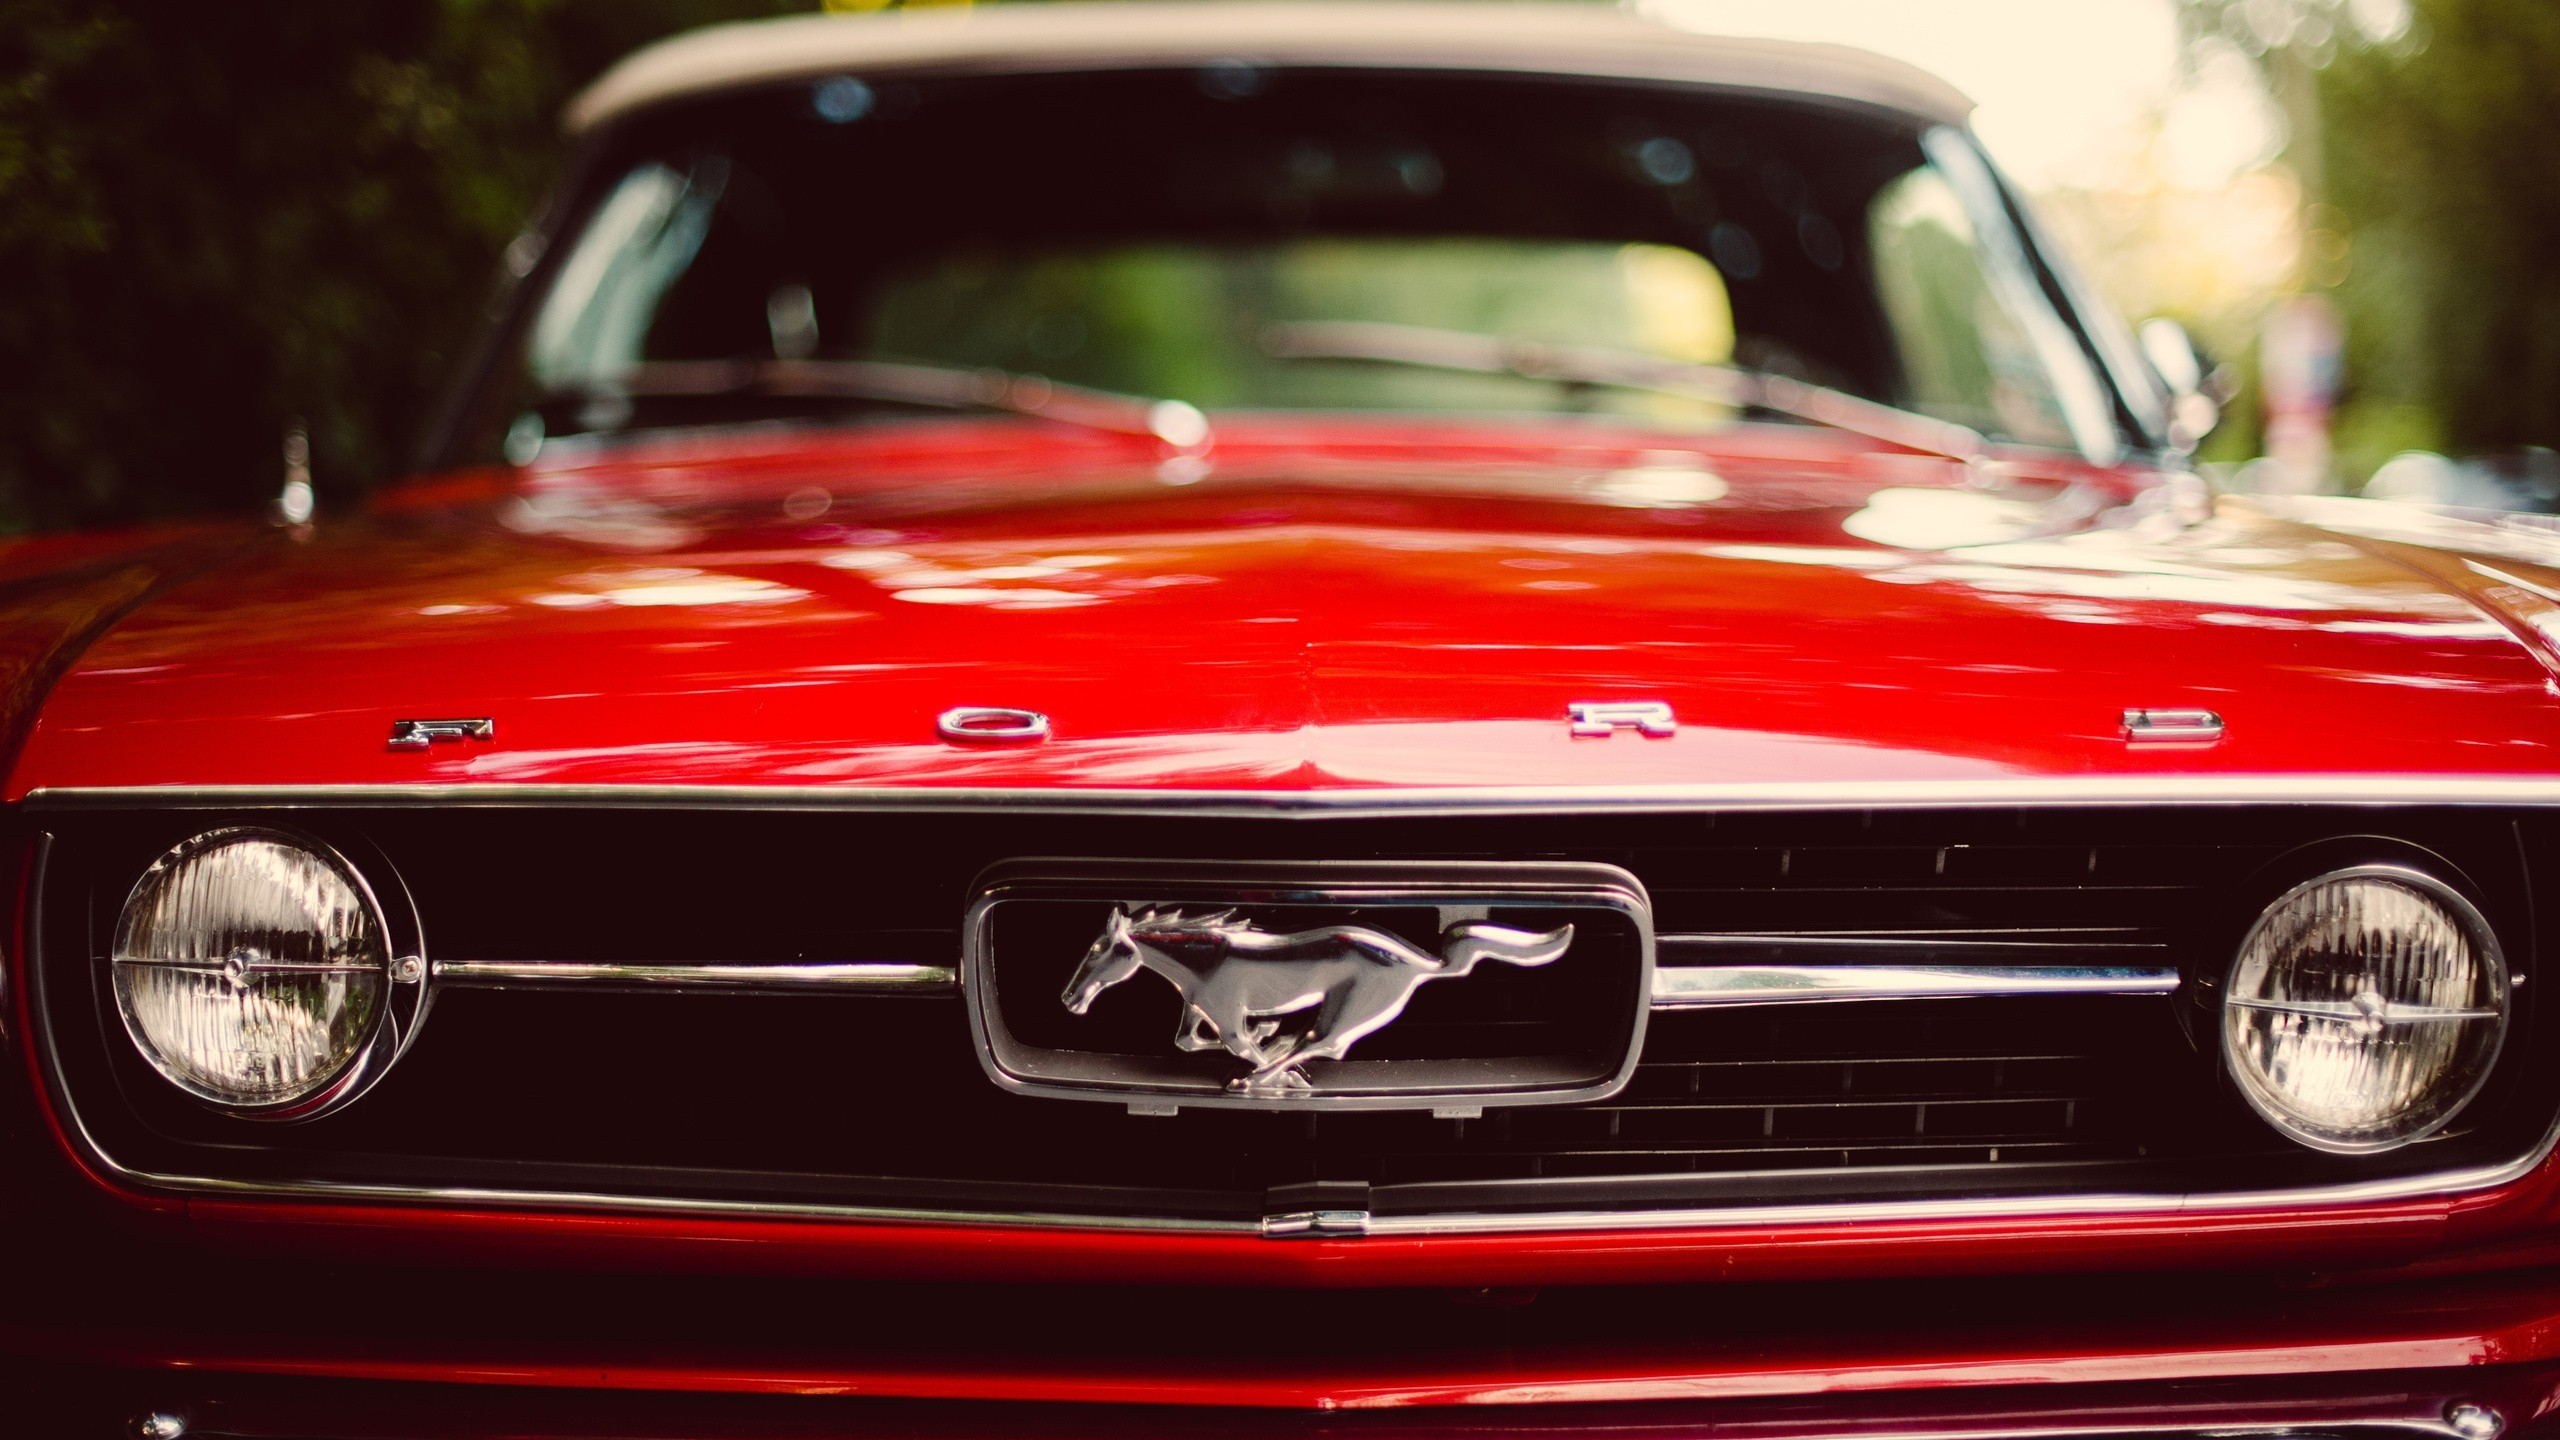 Muscle Cars Ford Mustang Red Car Wallpaper Hd